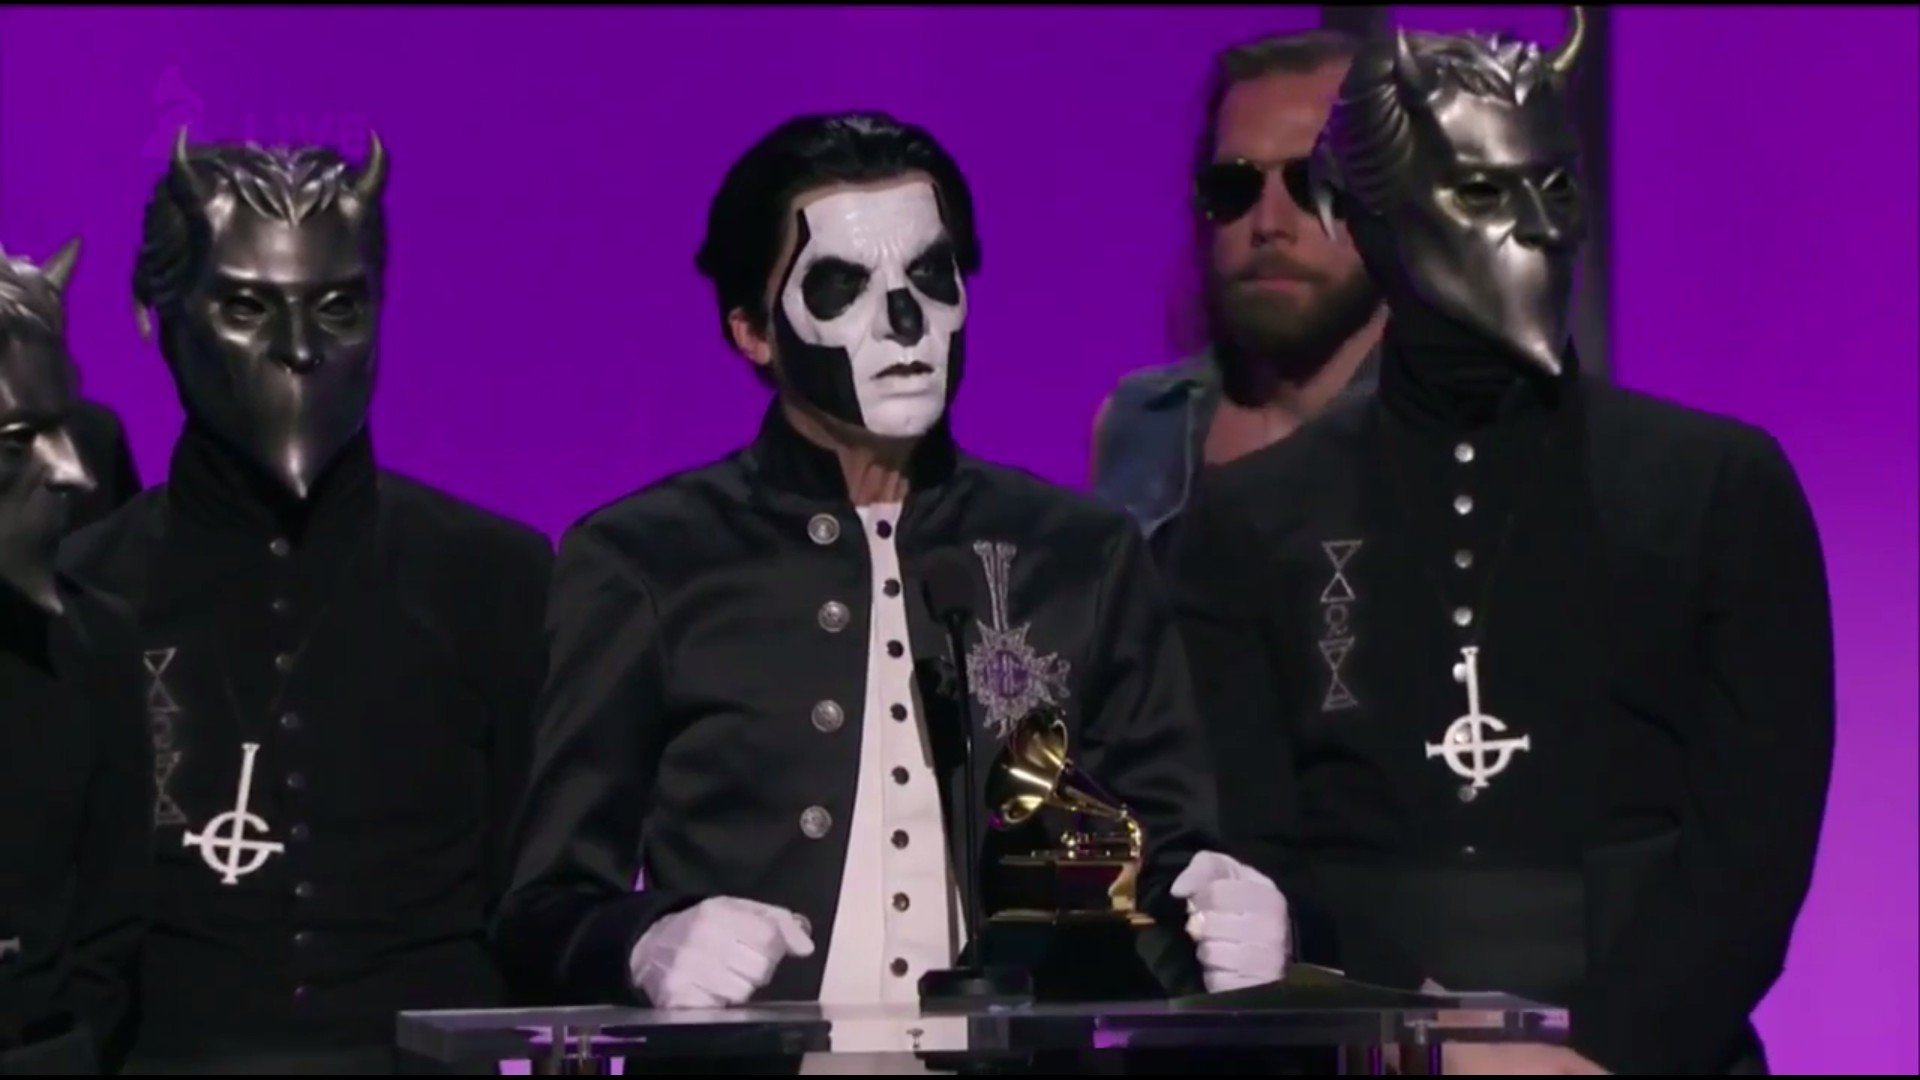 World Religion News Writes About Ghost Winning A Grammy And Their Religious Influence. Also Mentions CoG As A Source.